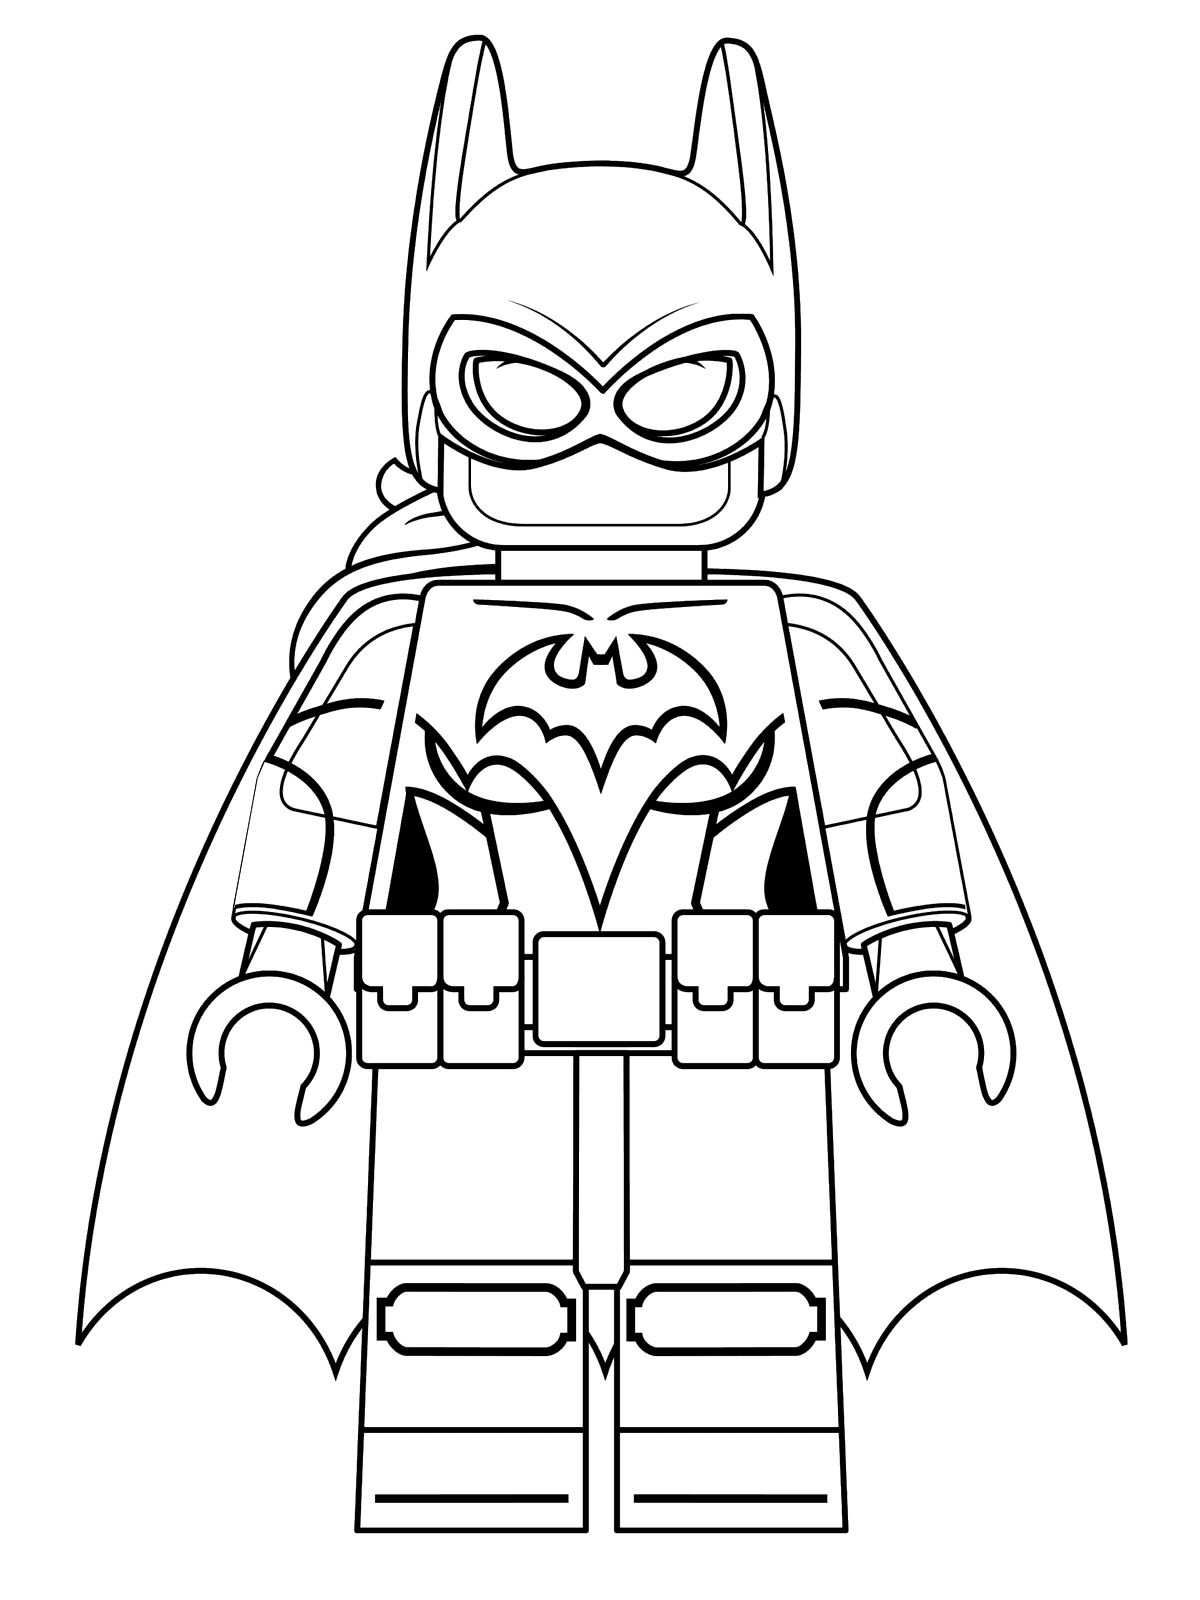 Coloring Pages Kids-N-Fun